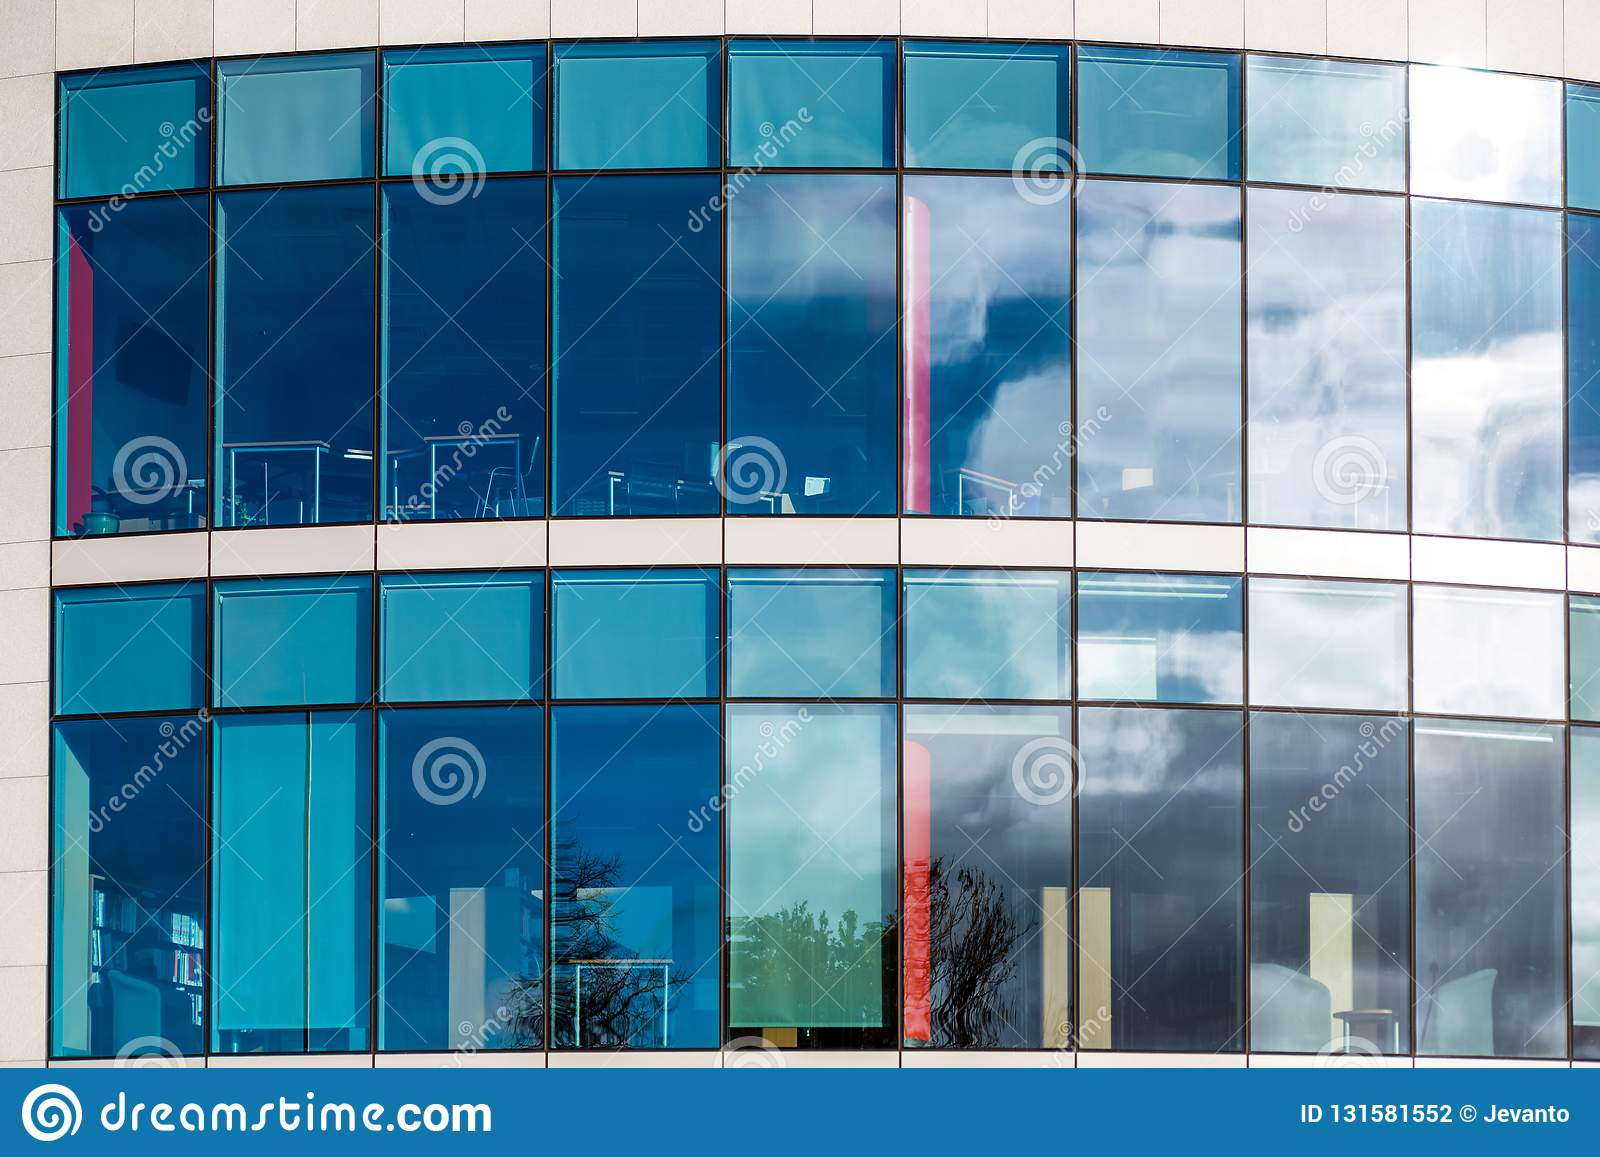 Sunny day view of windows of modern business corporate office building in northampton england uk